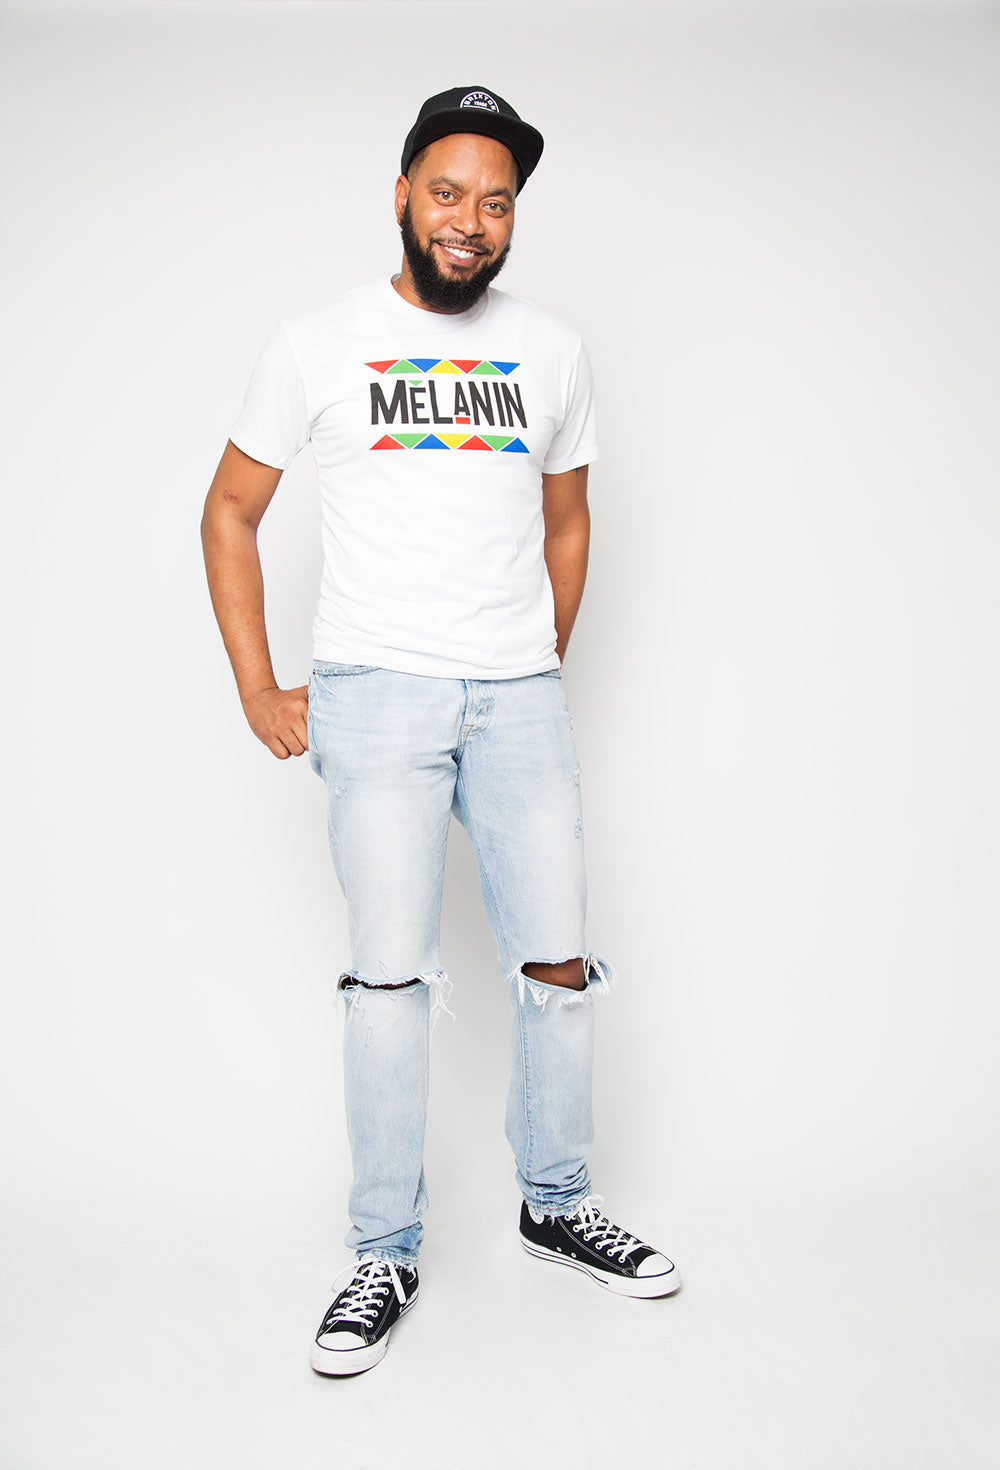 Melanin Shirt in White - Trunk Series, LLC